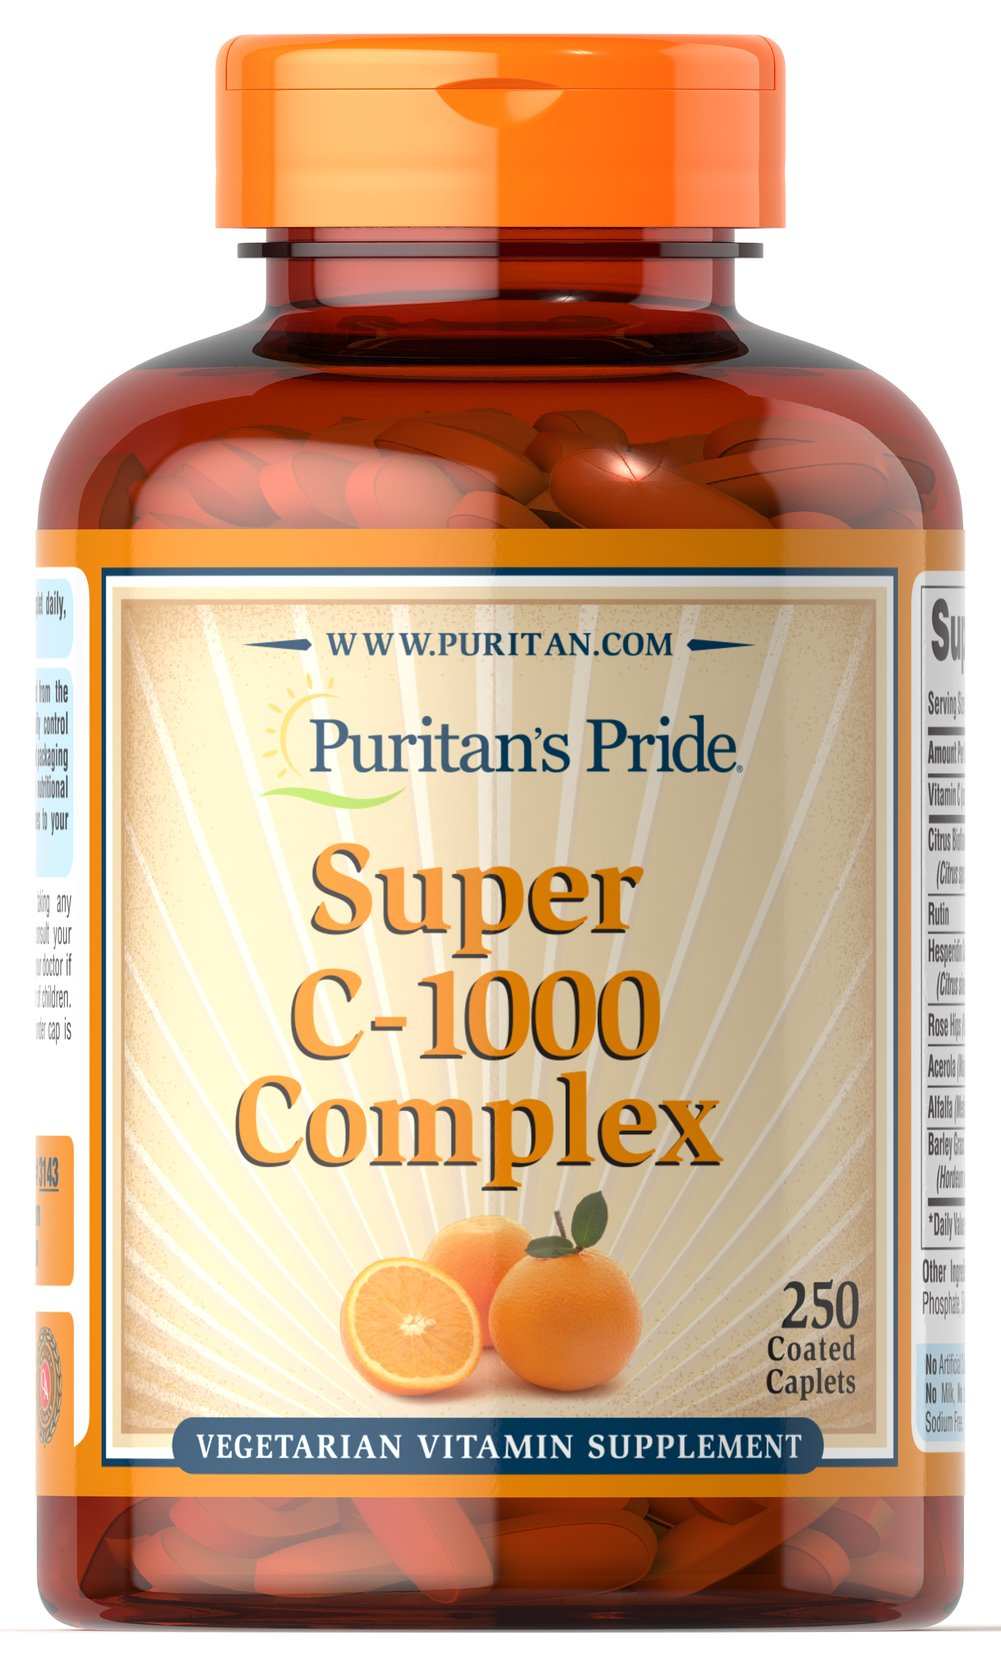 C-1000 Complex™ <p>Vitamin C  is essential to many functions in the body and is one of the leading vitamins for immune support.** Our C-complex includes potent Vitamin C as Ascorbic Acid. We also include Citrus Bioflavonoids, Rose Hips, Rutin, and Acerola.**</p><p>Offers superior antioxidant support.**</p><p>Supports healthy immune function and promotes well-being.**</p> 250 Coated Caplets 1000 mg $33.99